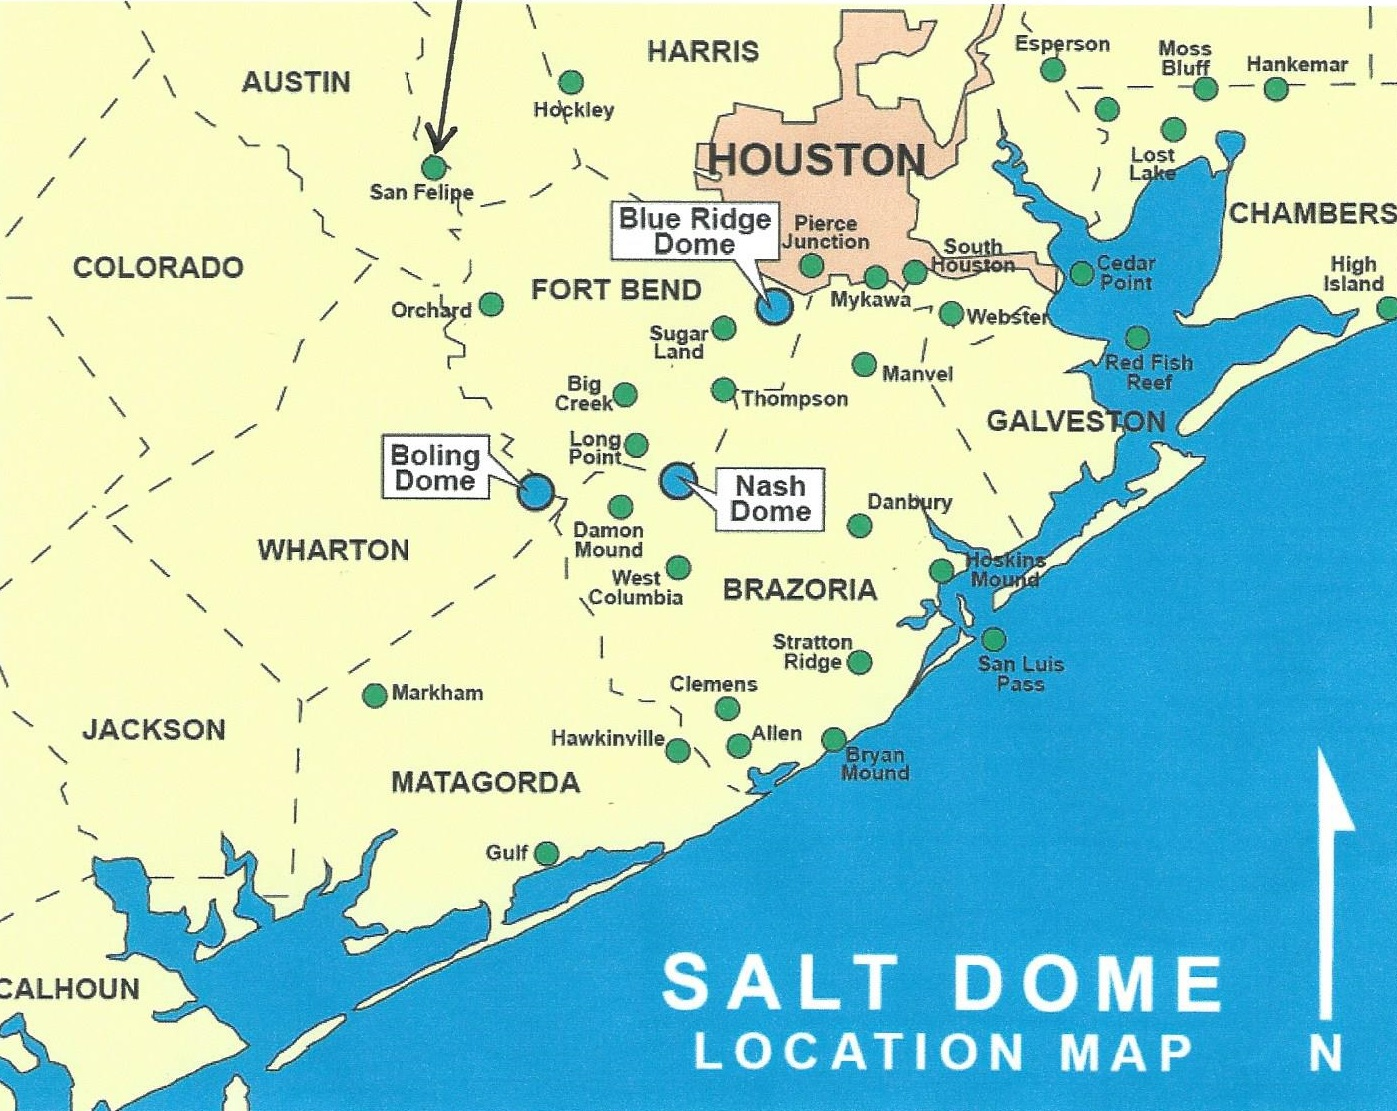 Texas Energy Exploration Llc Salt Dome Map Gulf Coast